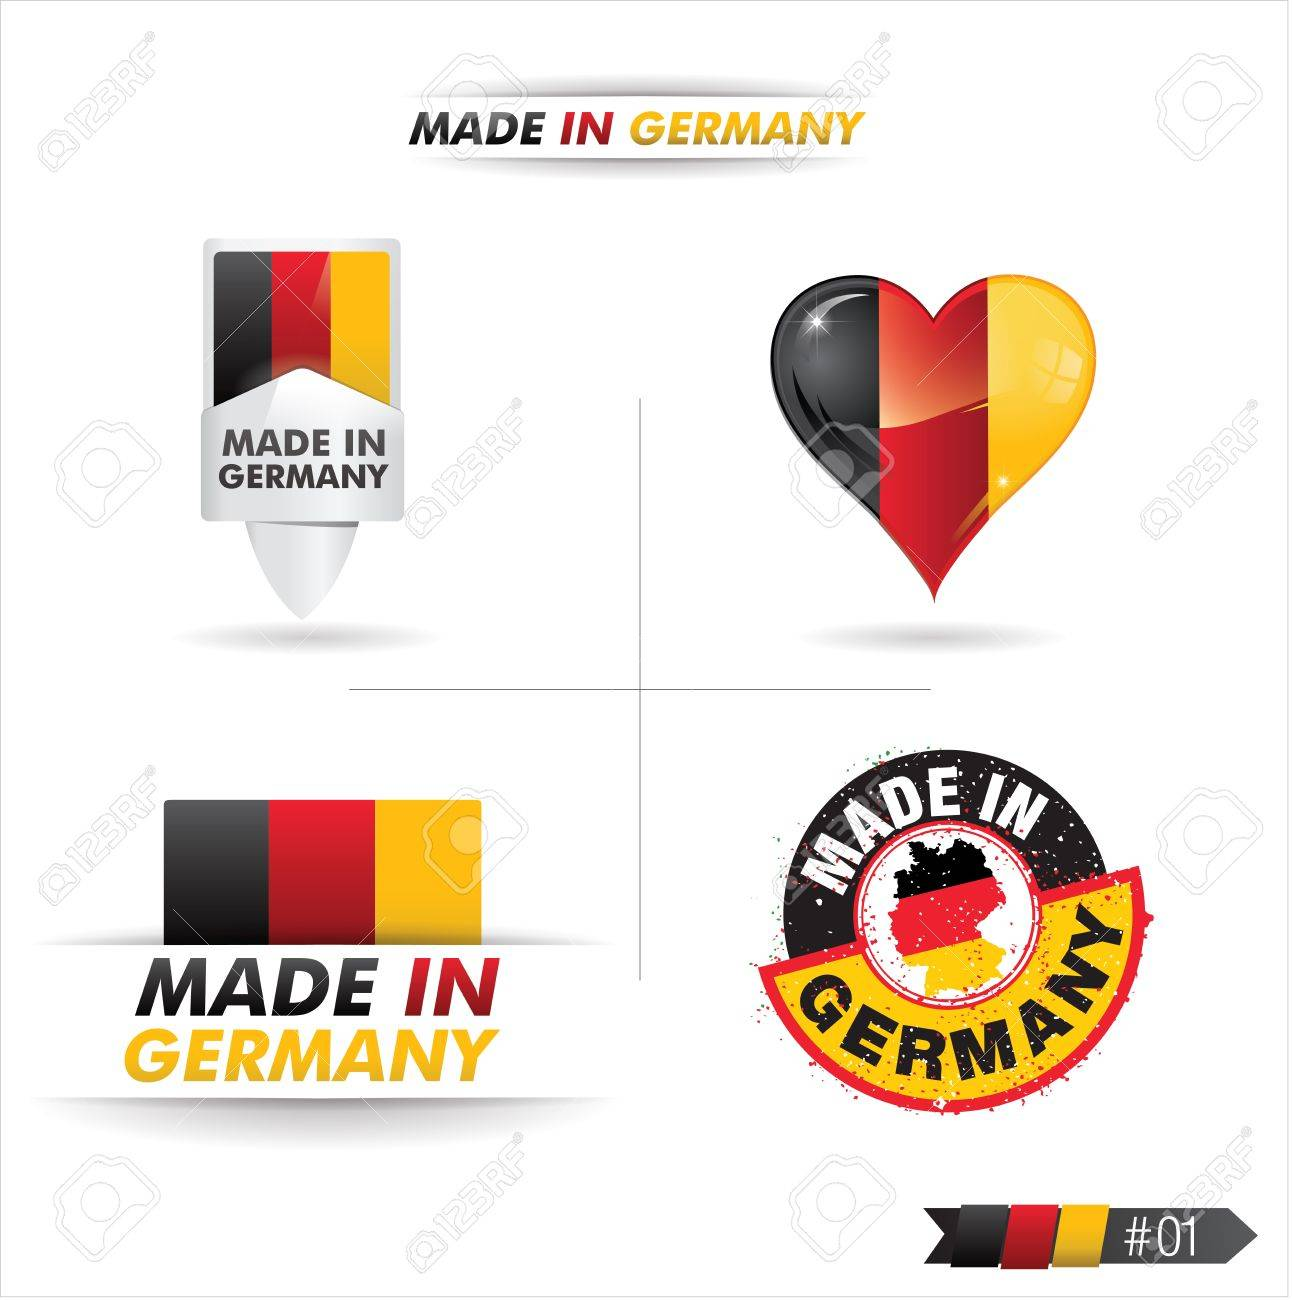 made in germany Stock Vector - 17645040